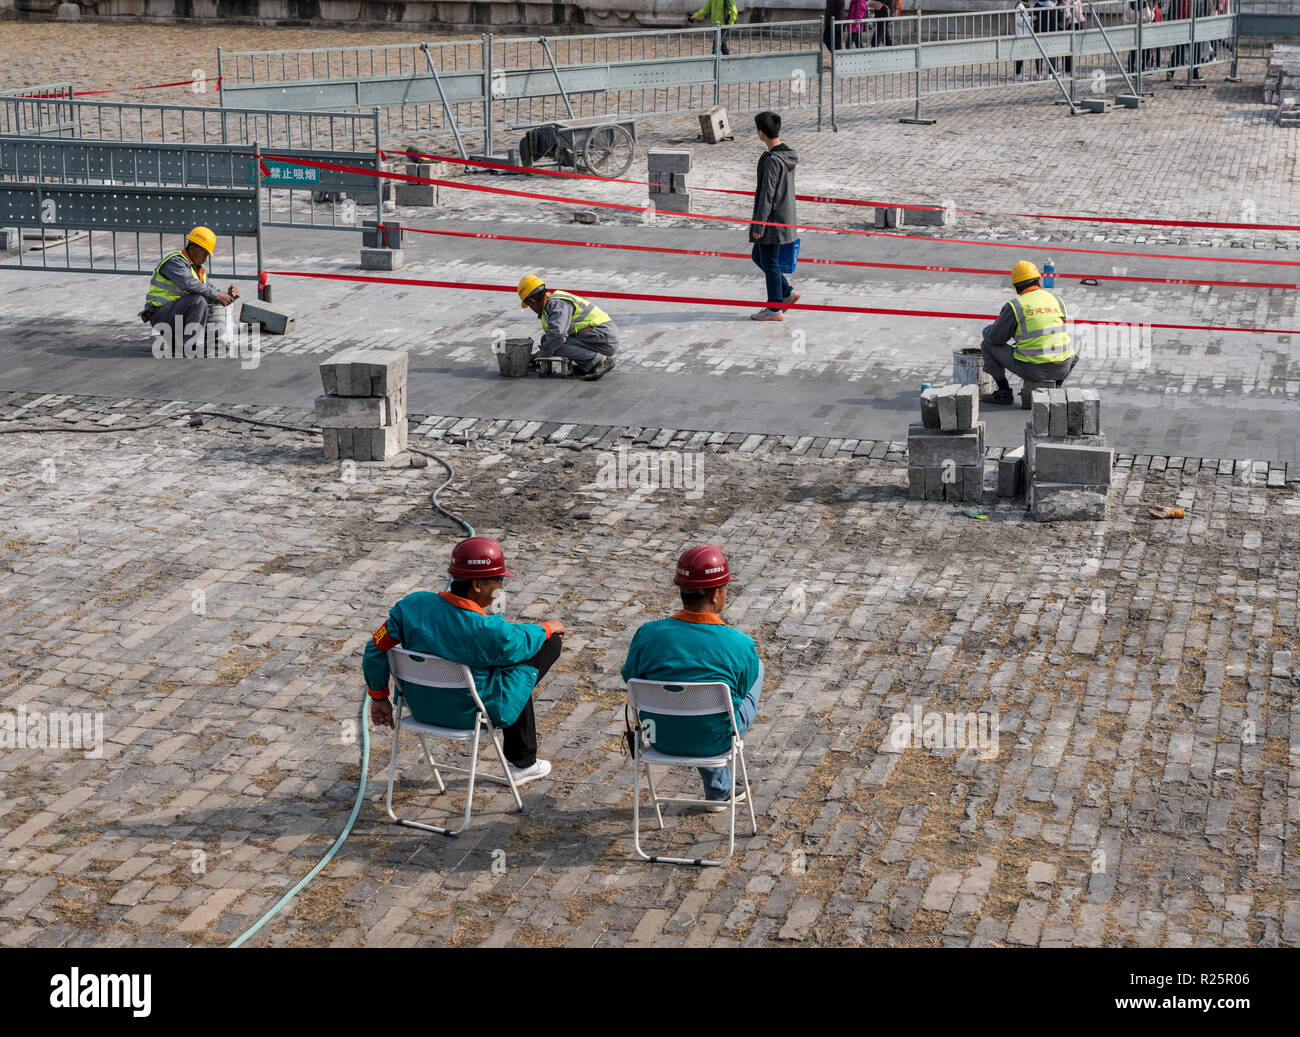 Supervisors oversee repair of paving slabs in Forbidden City - Stock Image